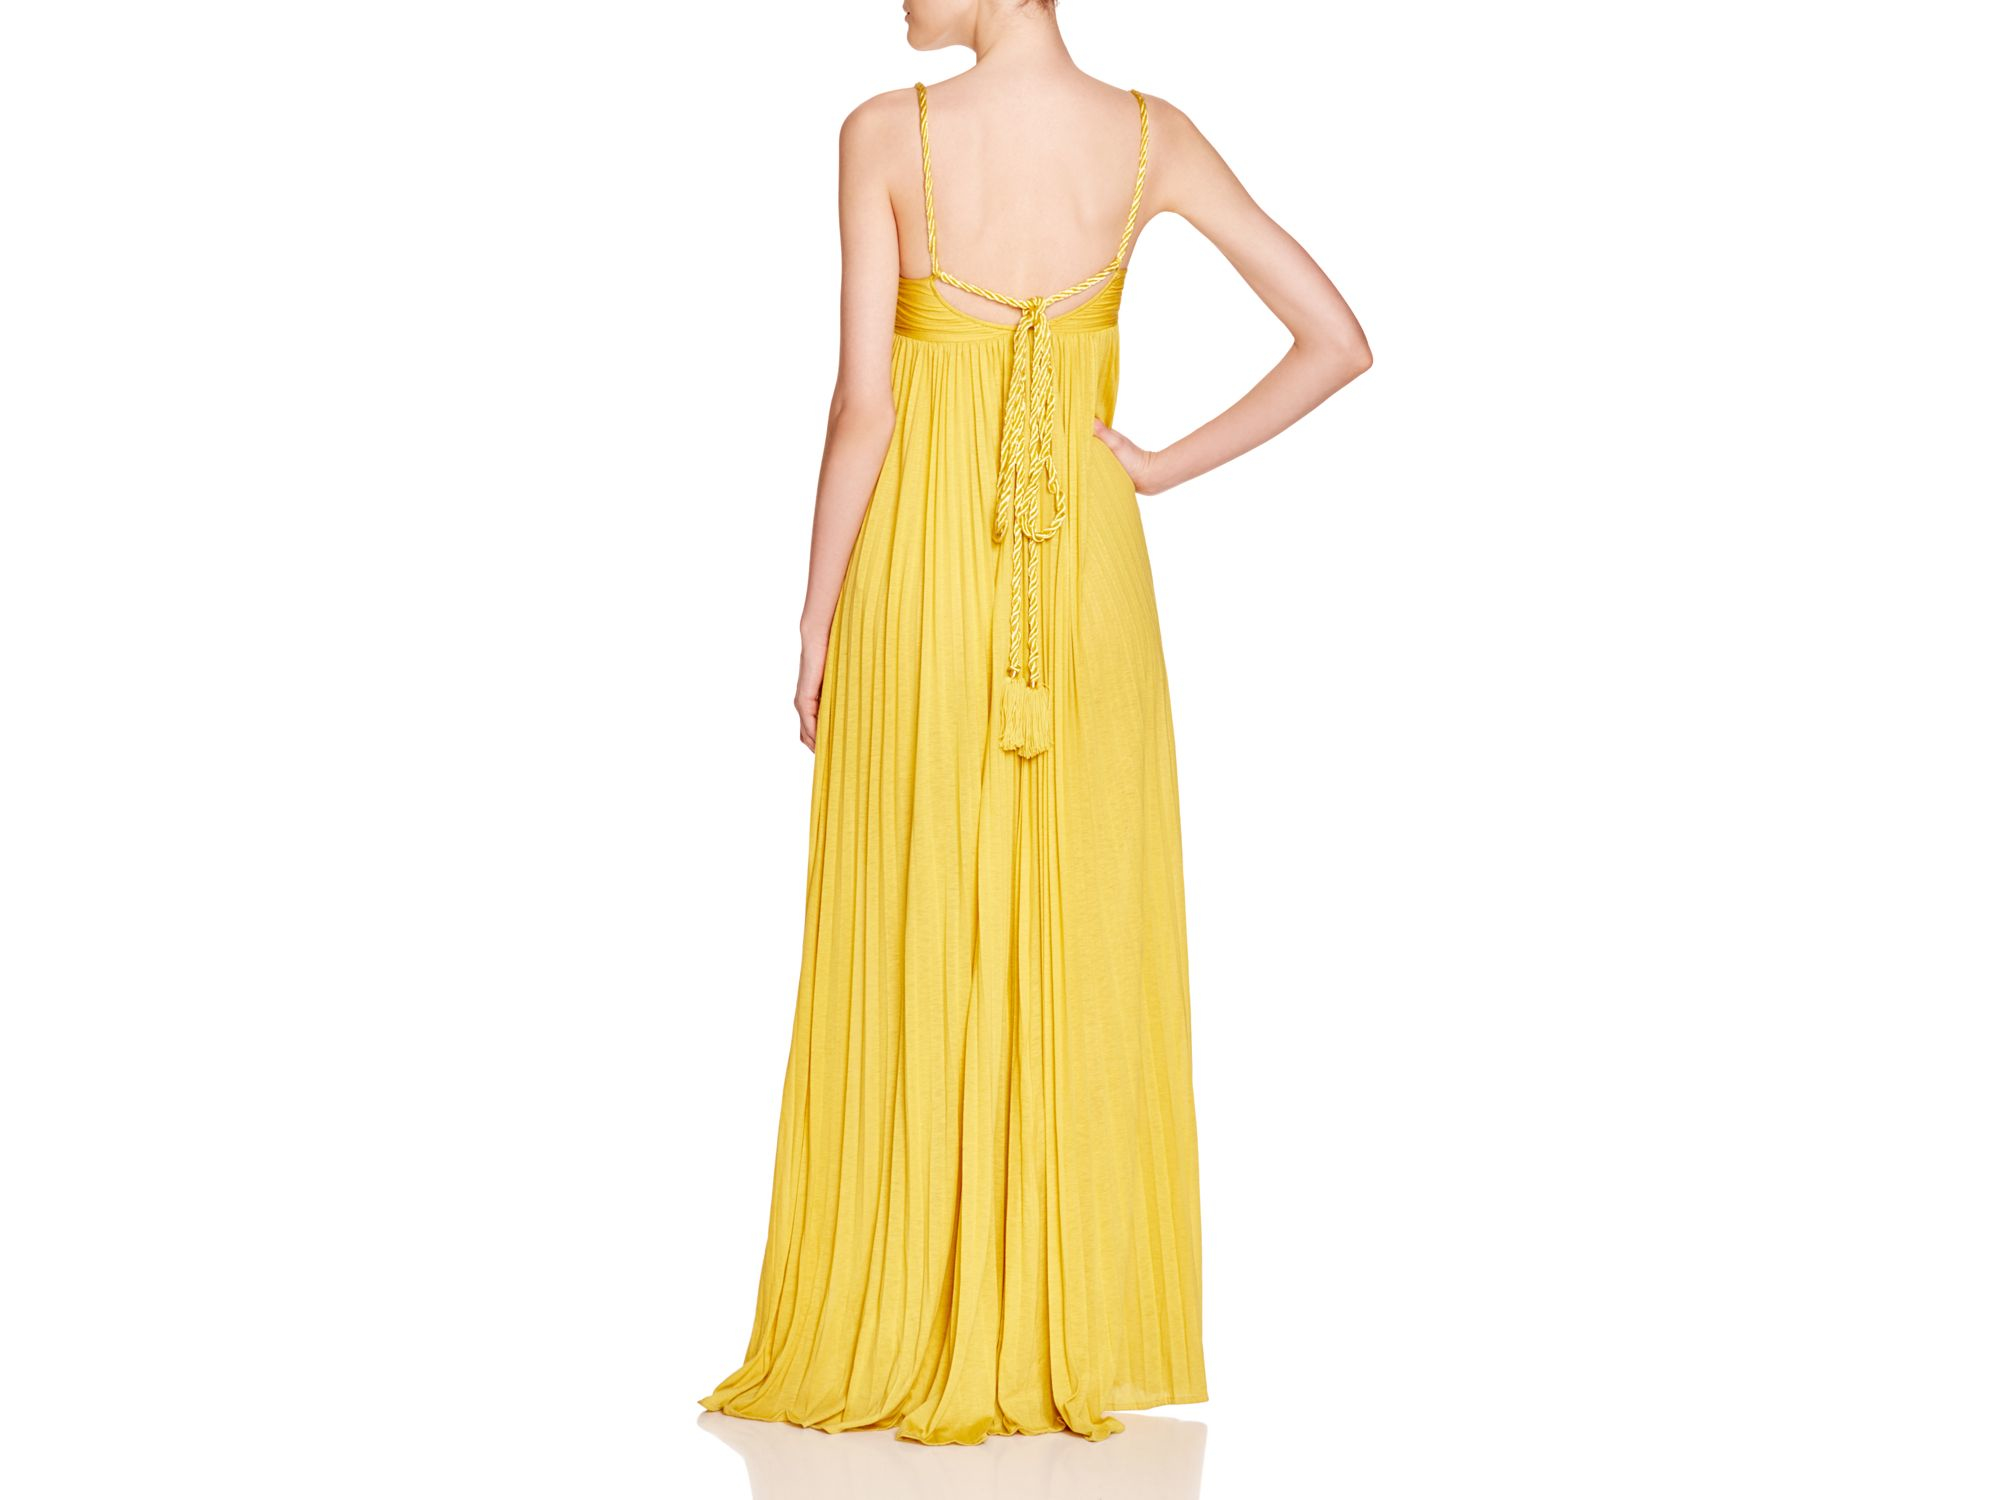 Lyst - Rachel Zoe Kim Rope Trimmed Crossover Gown in Yellow